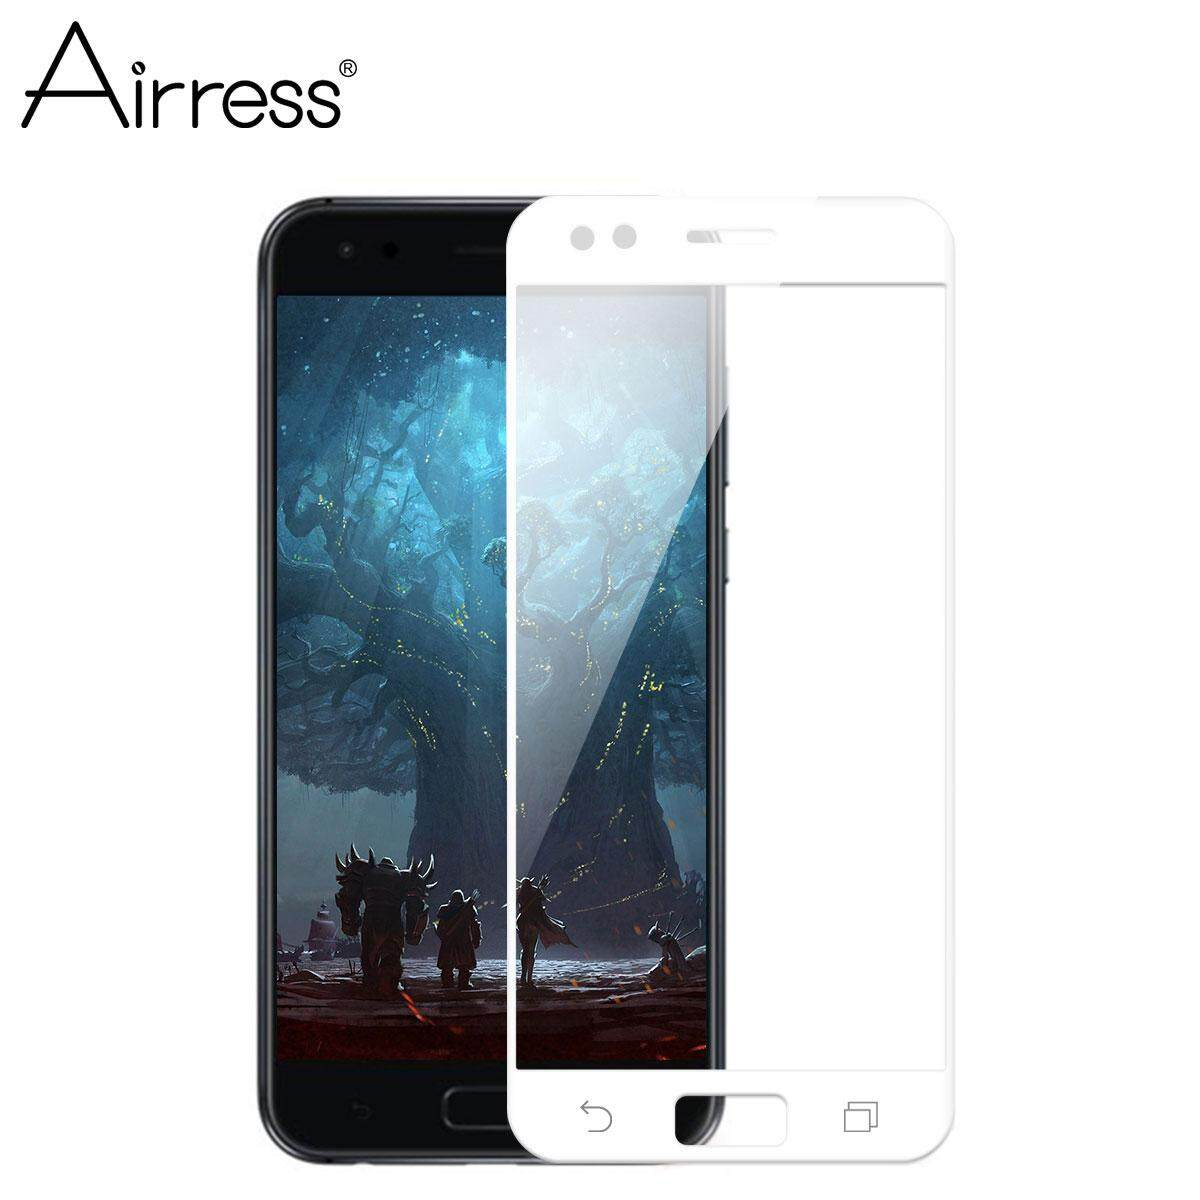 Features Asus Ze554kl Z01kd Tempered Glass Protector Dan Harga New Zenfone4s Zc451cg Airress For Zenfone 4 25d Curved Full Screen Anti Explosion